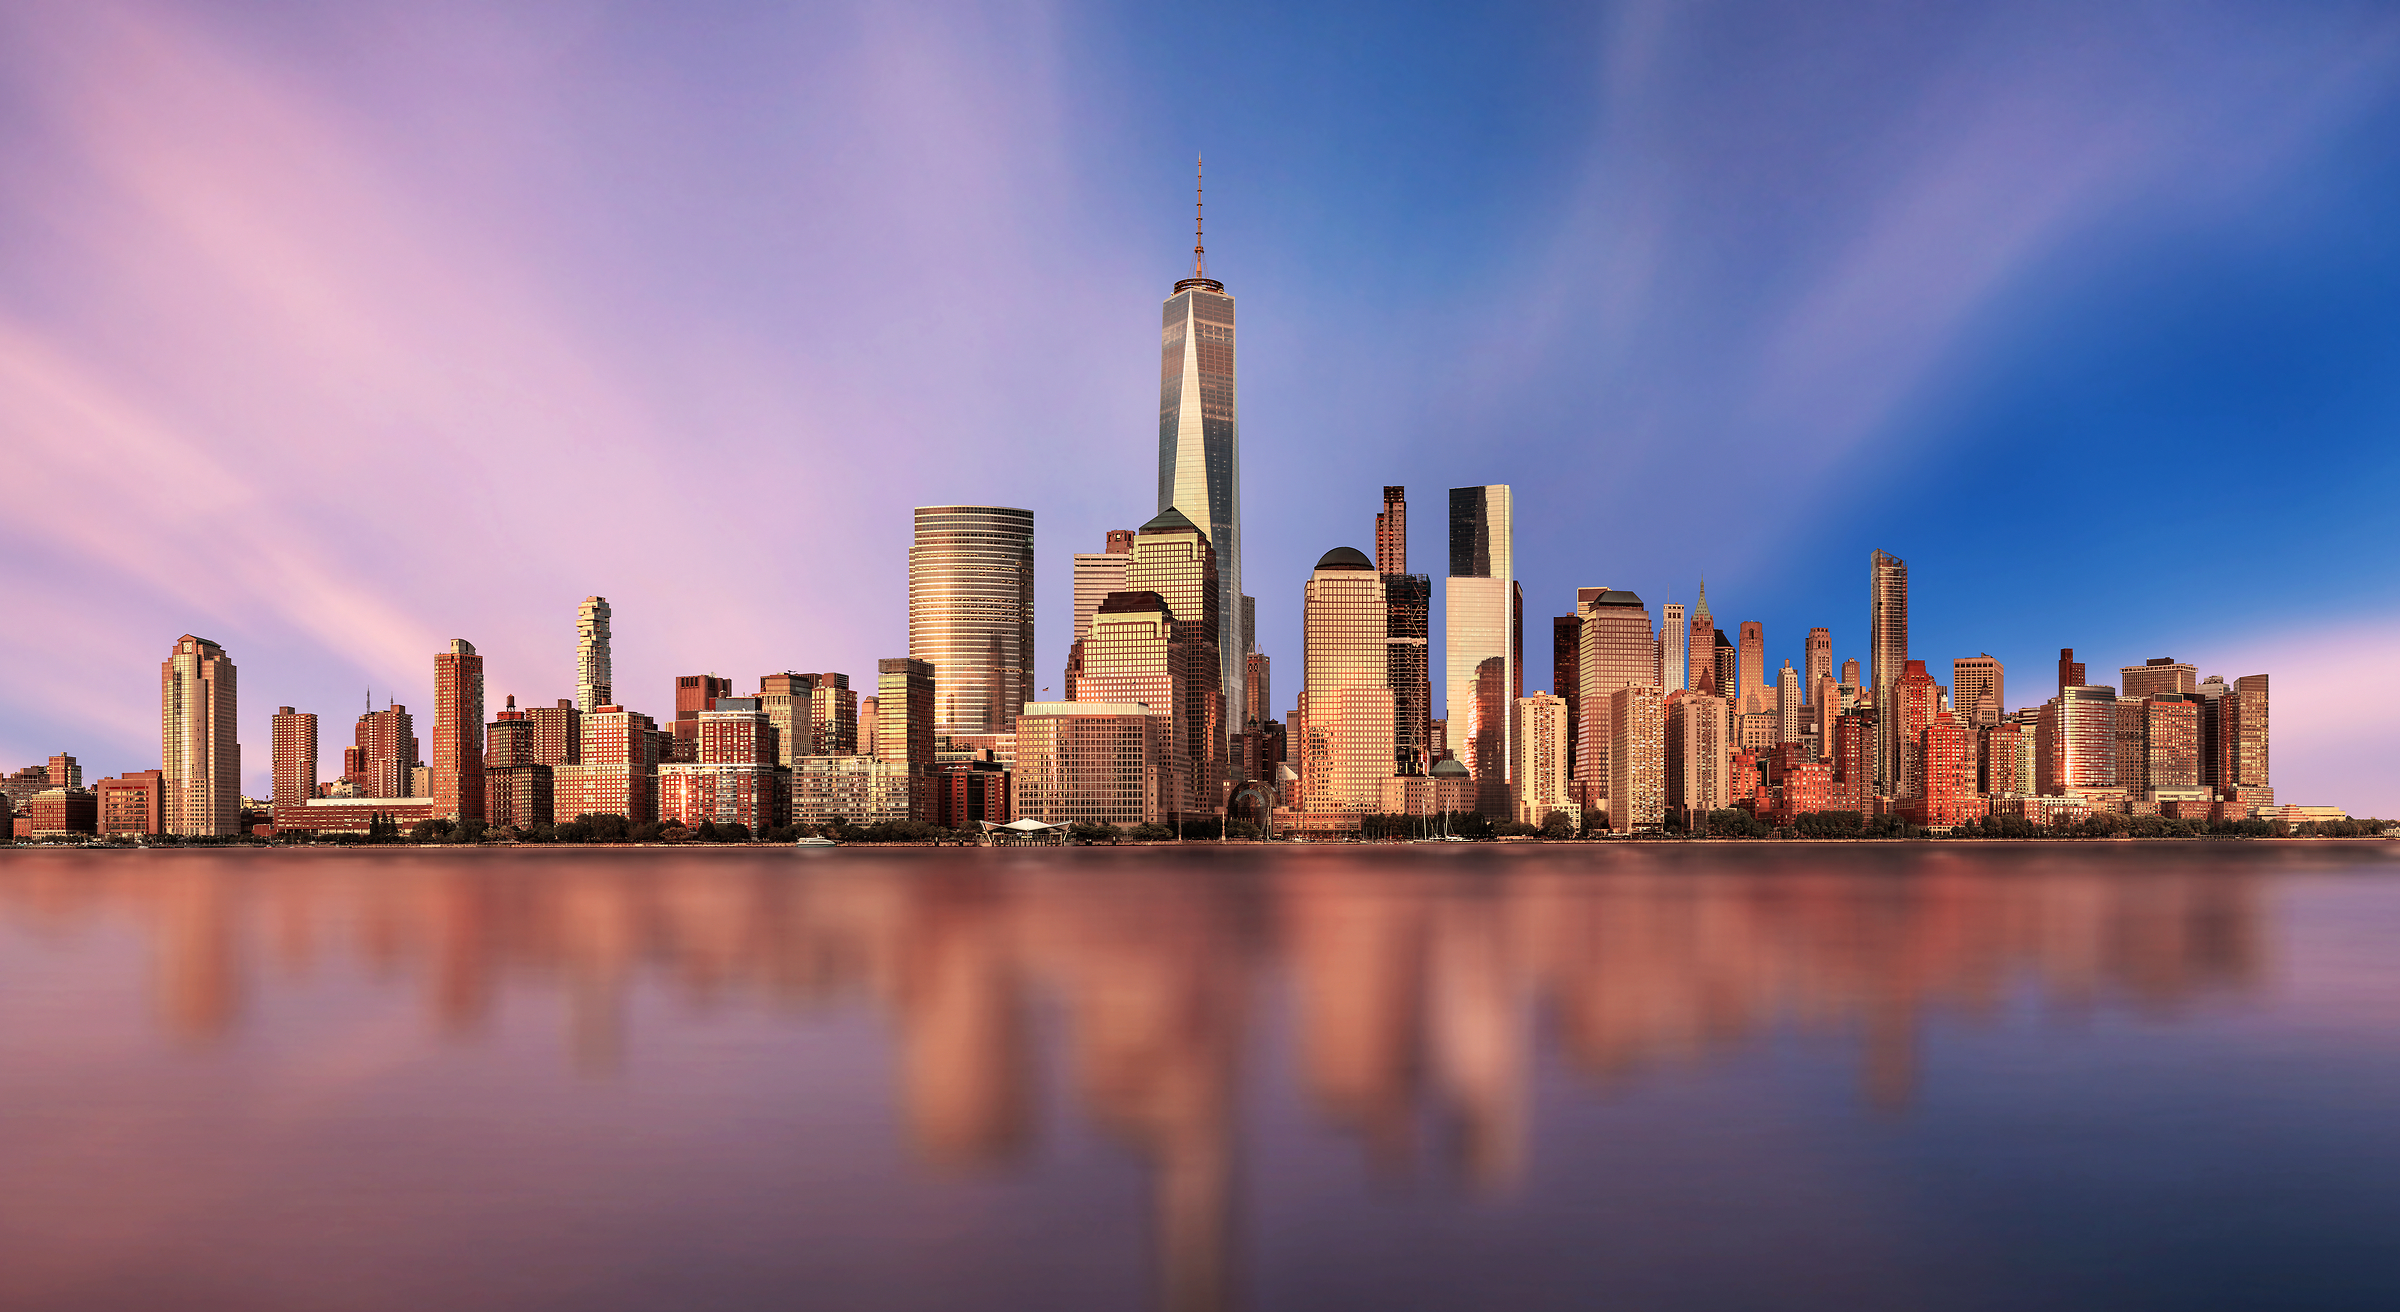 4,201 megapixels! An incredibly high resolution photo of a beautiful sunset, the NYC skyline, and the World Trade Center; cityscape fine art print created by Chris Collacott in Manhattan, New York City